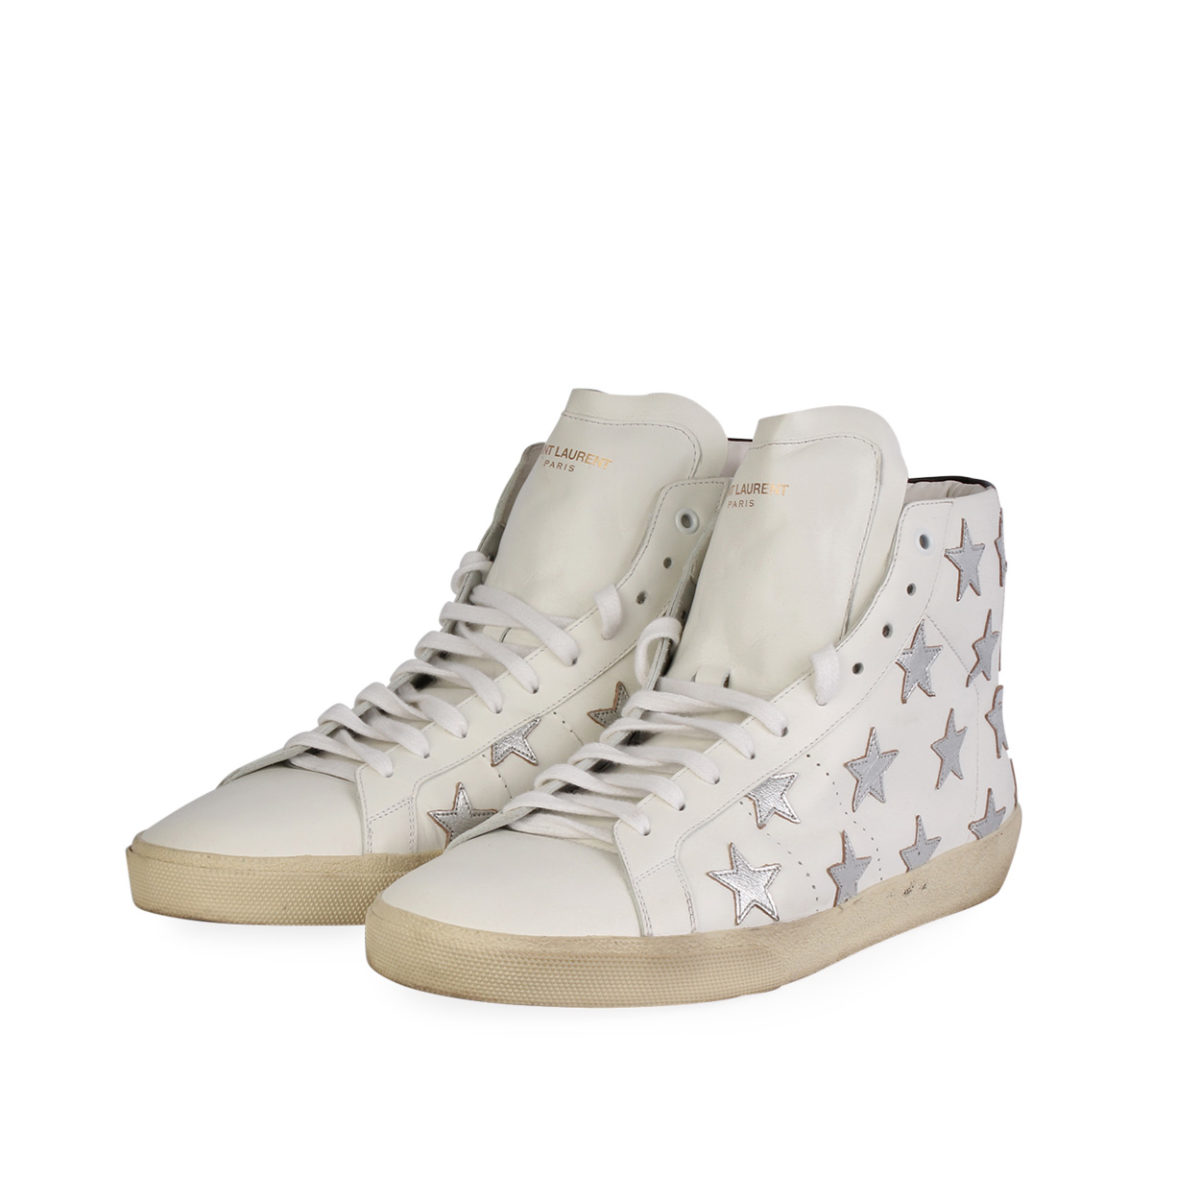 d9d3c14814a YVES SAINT LAURENT Leather Star Patch High Top Sneakers White - S ...